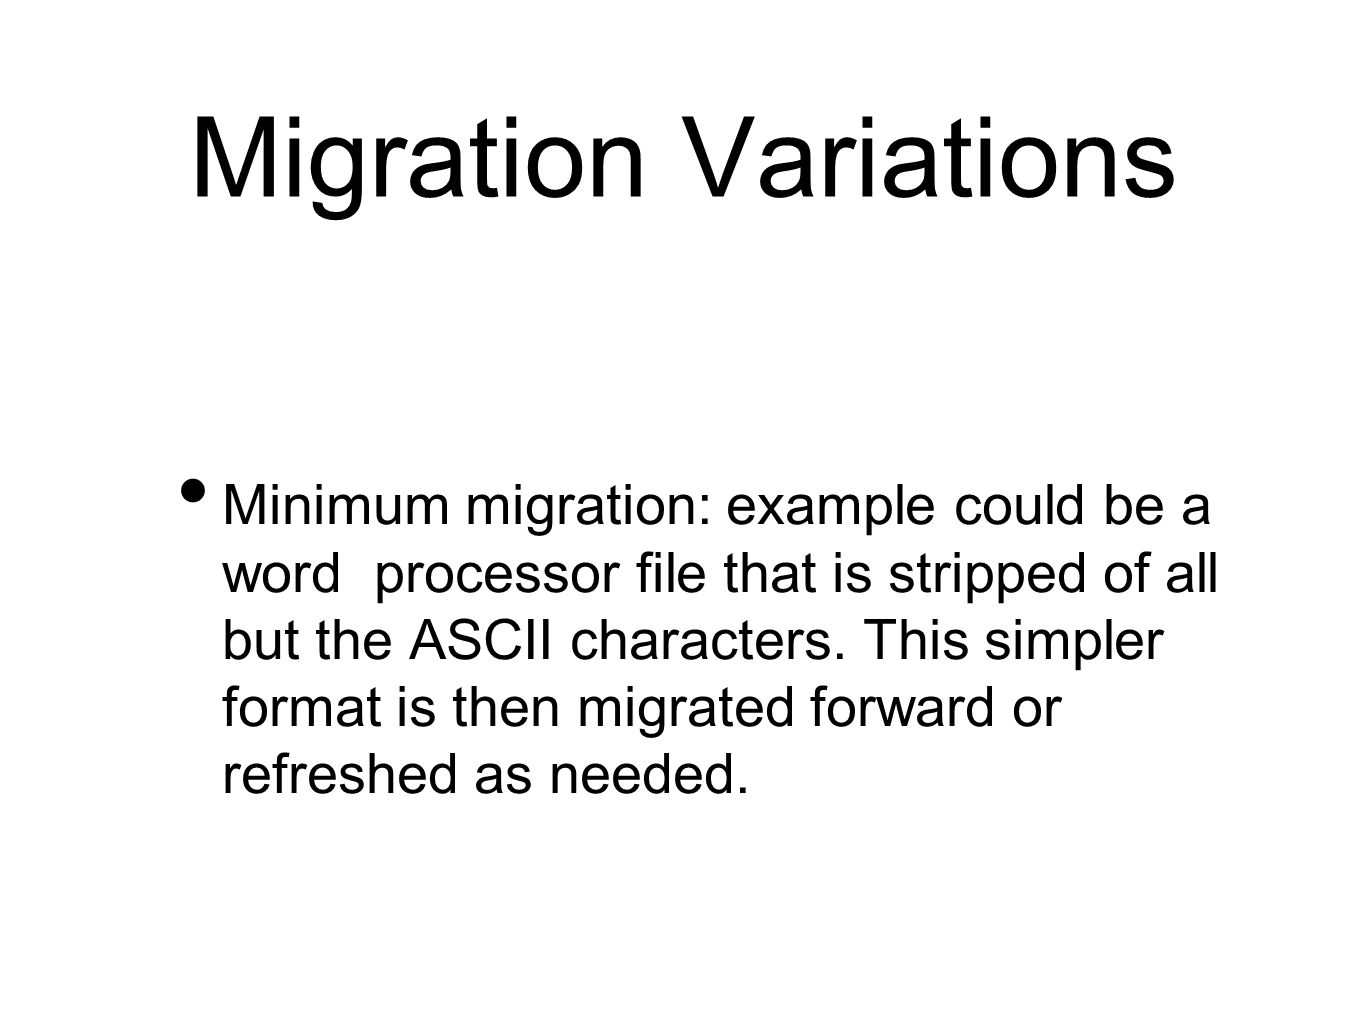 Migration Variations Minimum migration: example could be a word processor file that is stripped of all but the ASCII characters.